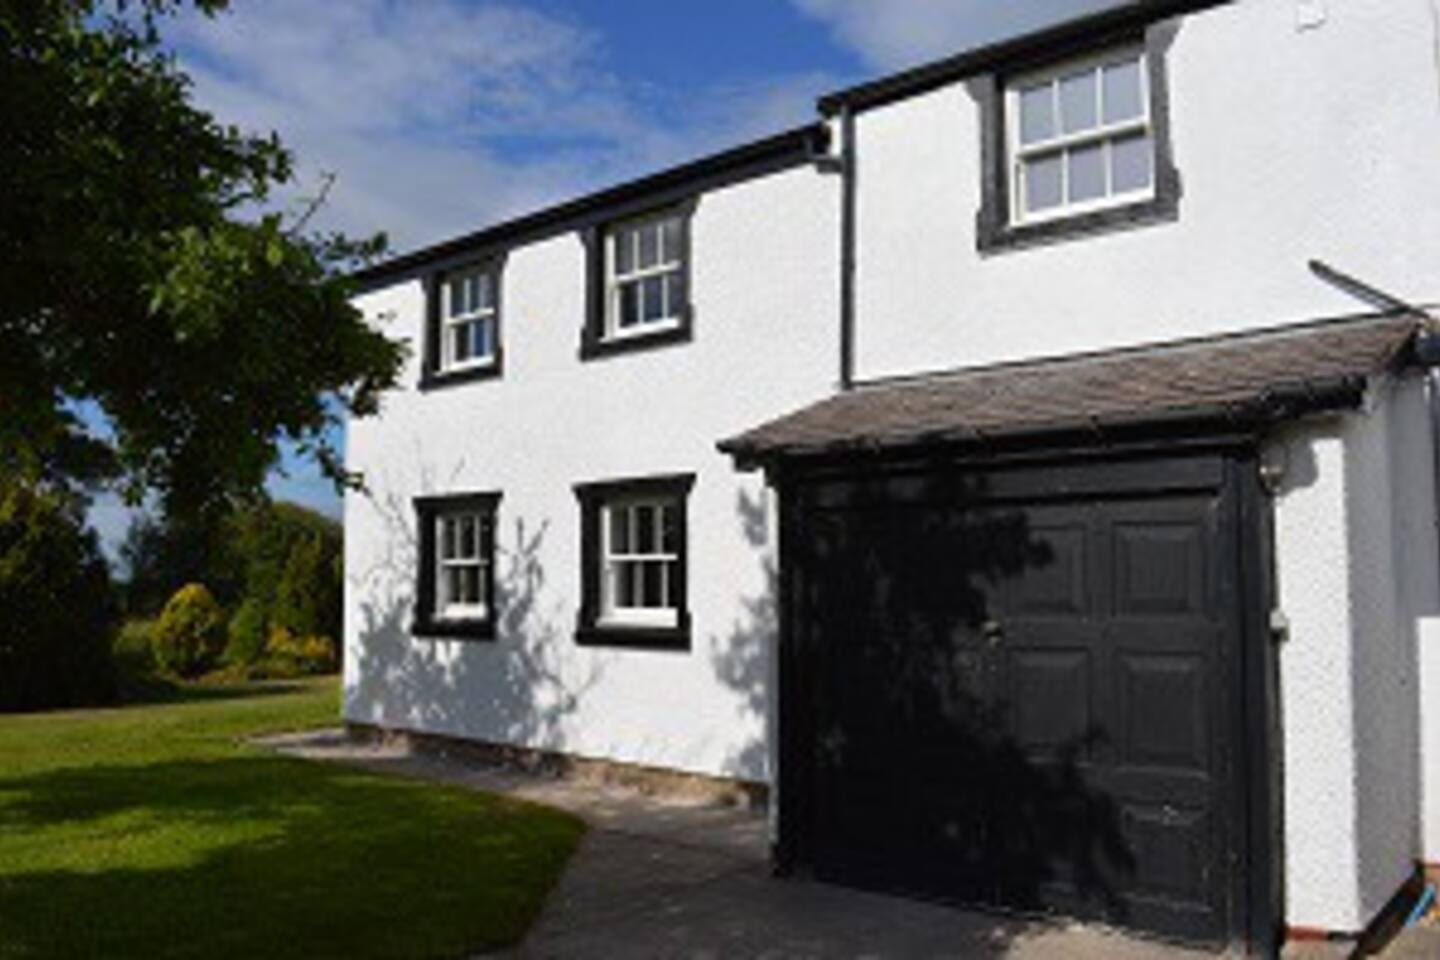 Completed in 2018 this cottage is set in open countryside with stunning views towards the Cheshire Plain and The Panorama Hills above Llangollen.   Accommodation is attached to the main house, comprising of a spacious bedroom/sitting room with dressing room off and a large shower room en-suite. All on the first floor with triple aspect to take in the wonderful views. The kitchen/diner on the ground floor comprises all modern appliances and dining facilities. Guests will appreciate that due to our rural location our wi-fi is rather slow at times.  There are a host of interesting places to visit within easy reach including: LLangollen (9 miles), Chester (16 miles). Less than an hours drive away guests can visit the North Wales coast, Liverpool, Conwy or the Snowdonia National Park. There are also many other local attractions including Chirk Castle and Erddig House for you  to enjoy.  Your hosts Patti and David will be glad to welcome you to their newly completed Plas Eyton Holiday let.